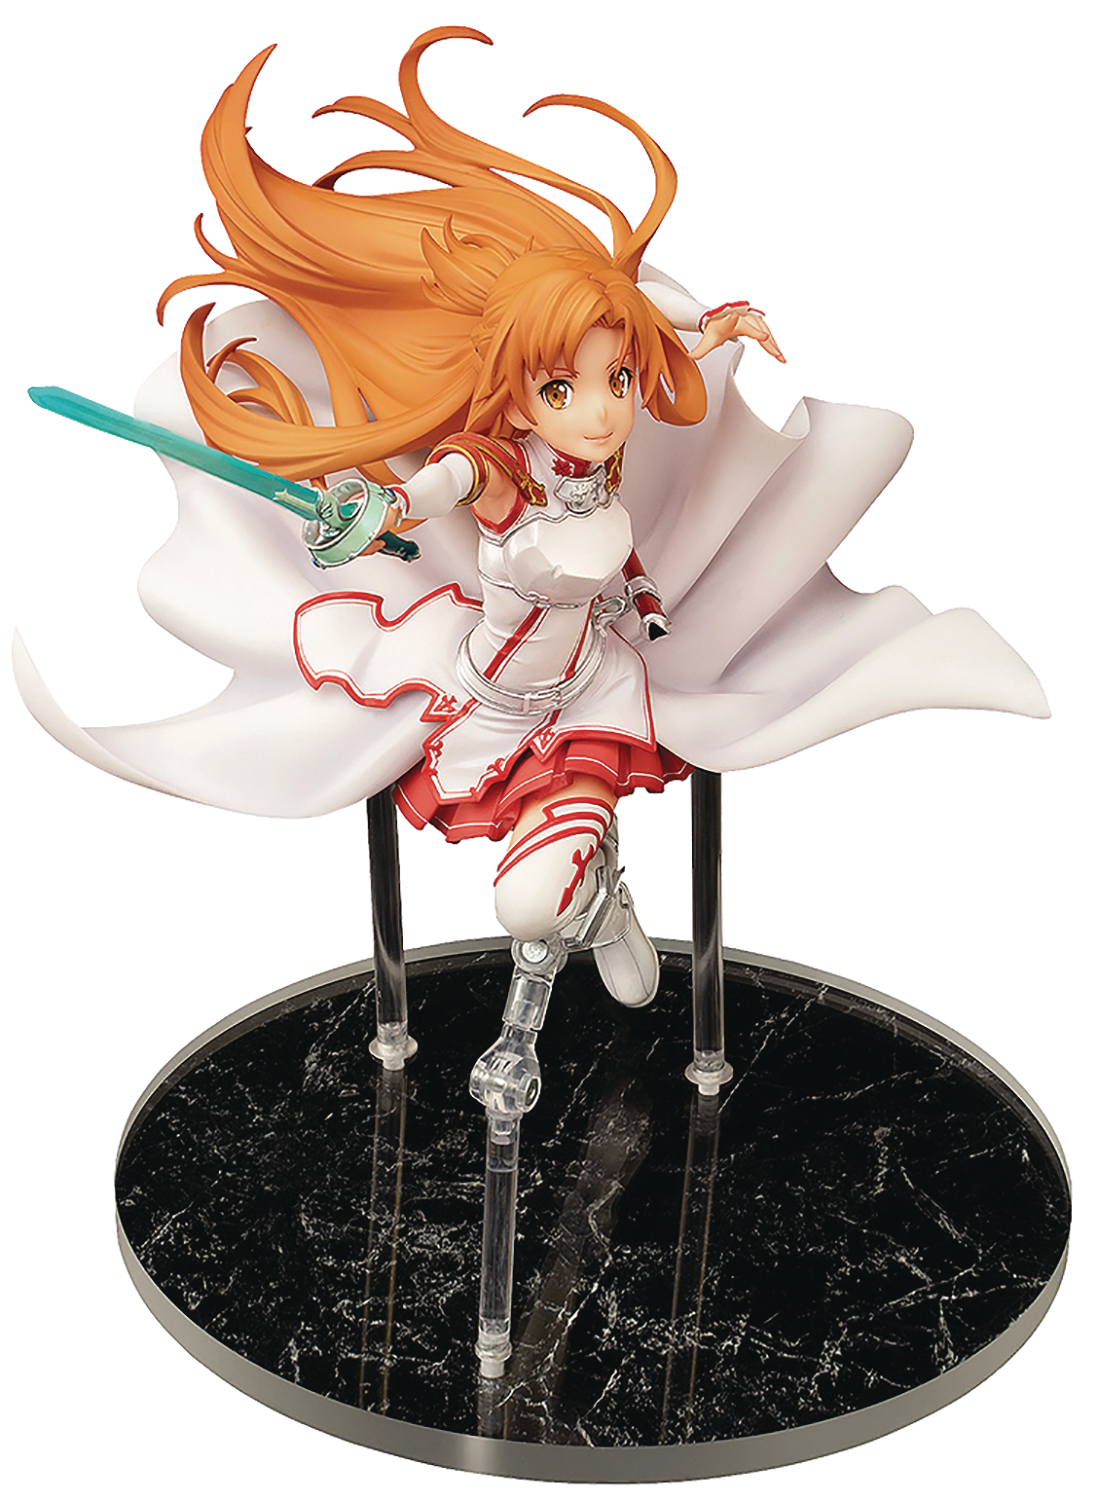 SWORD ART ONLINE ASUNA THE FLASH 1/7 PVC FIG